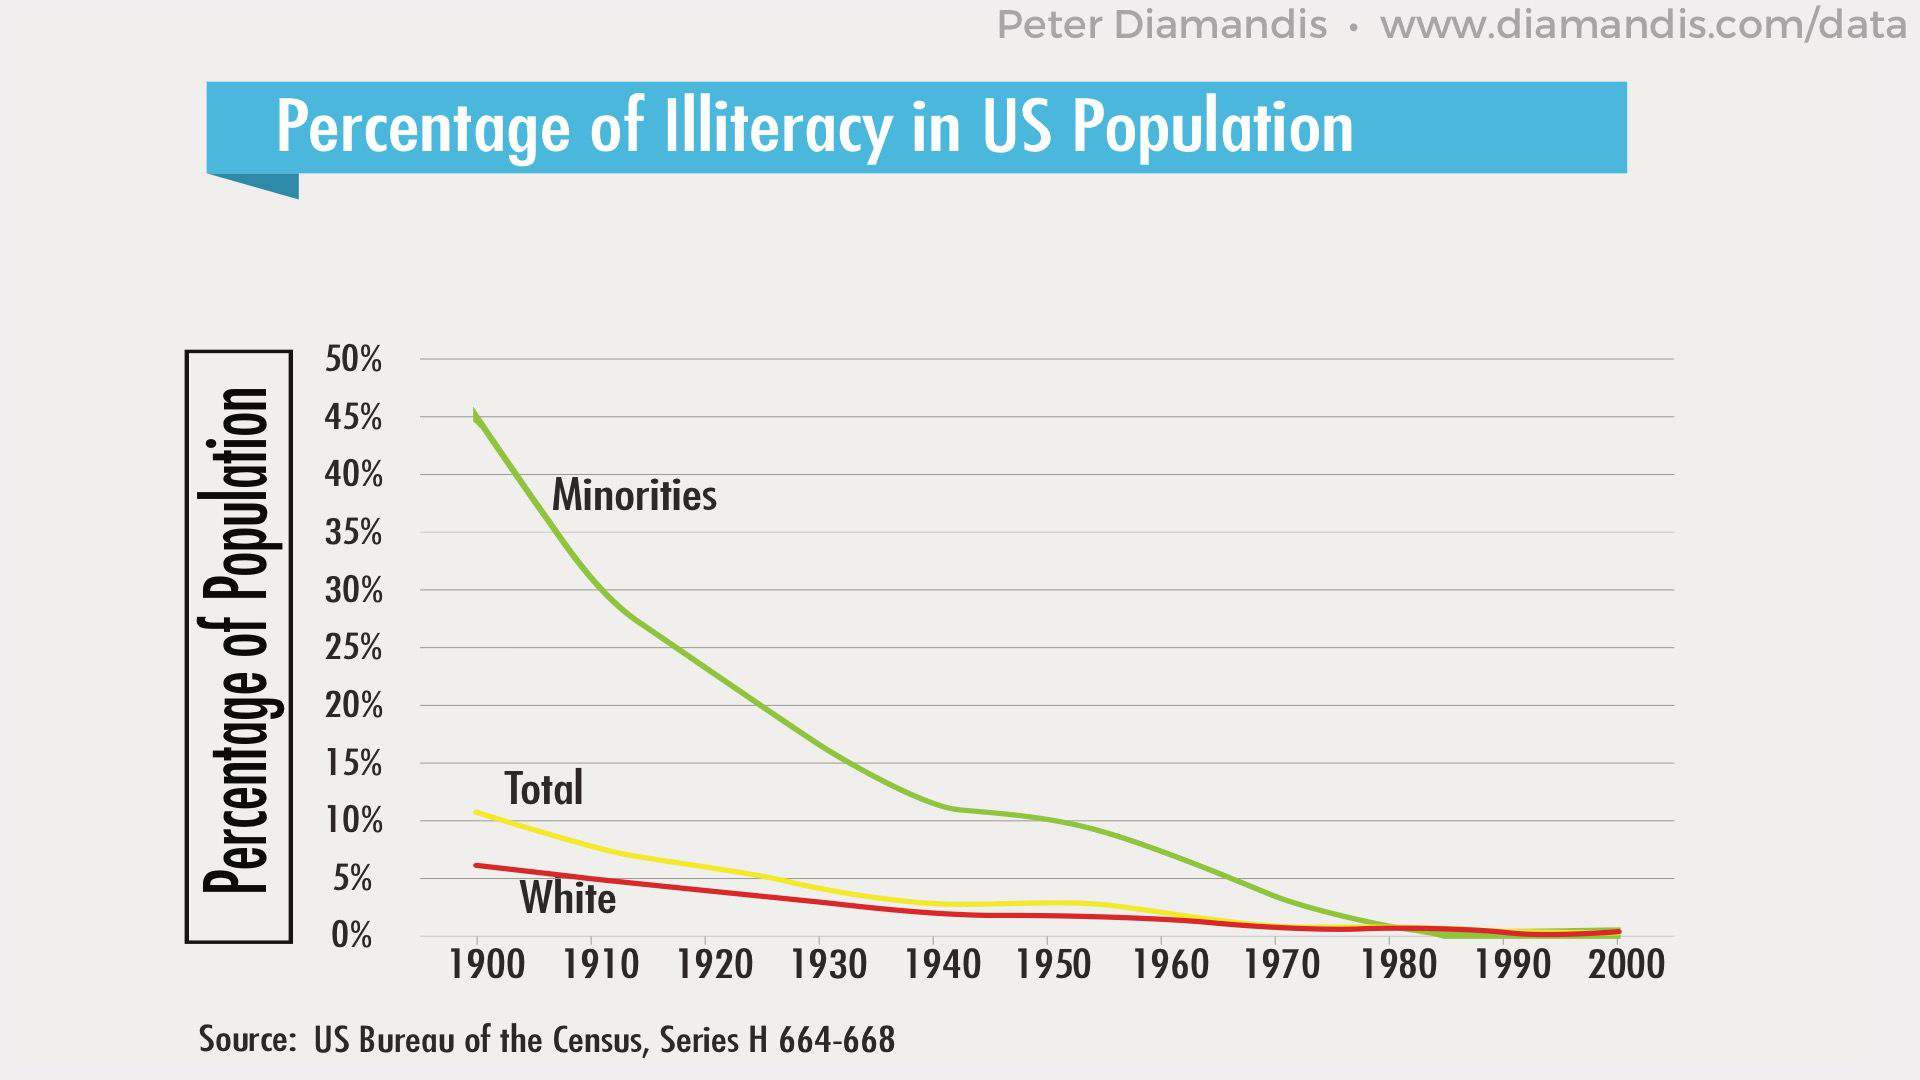 Percentage-of-Illiteracy-in-U.S.-Population